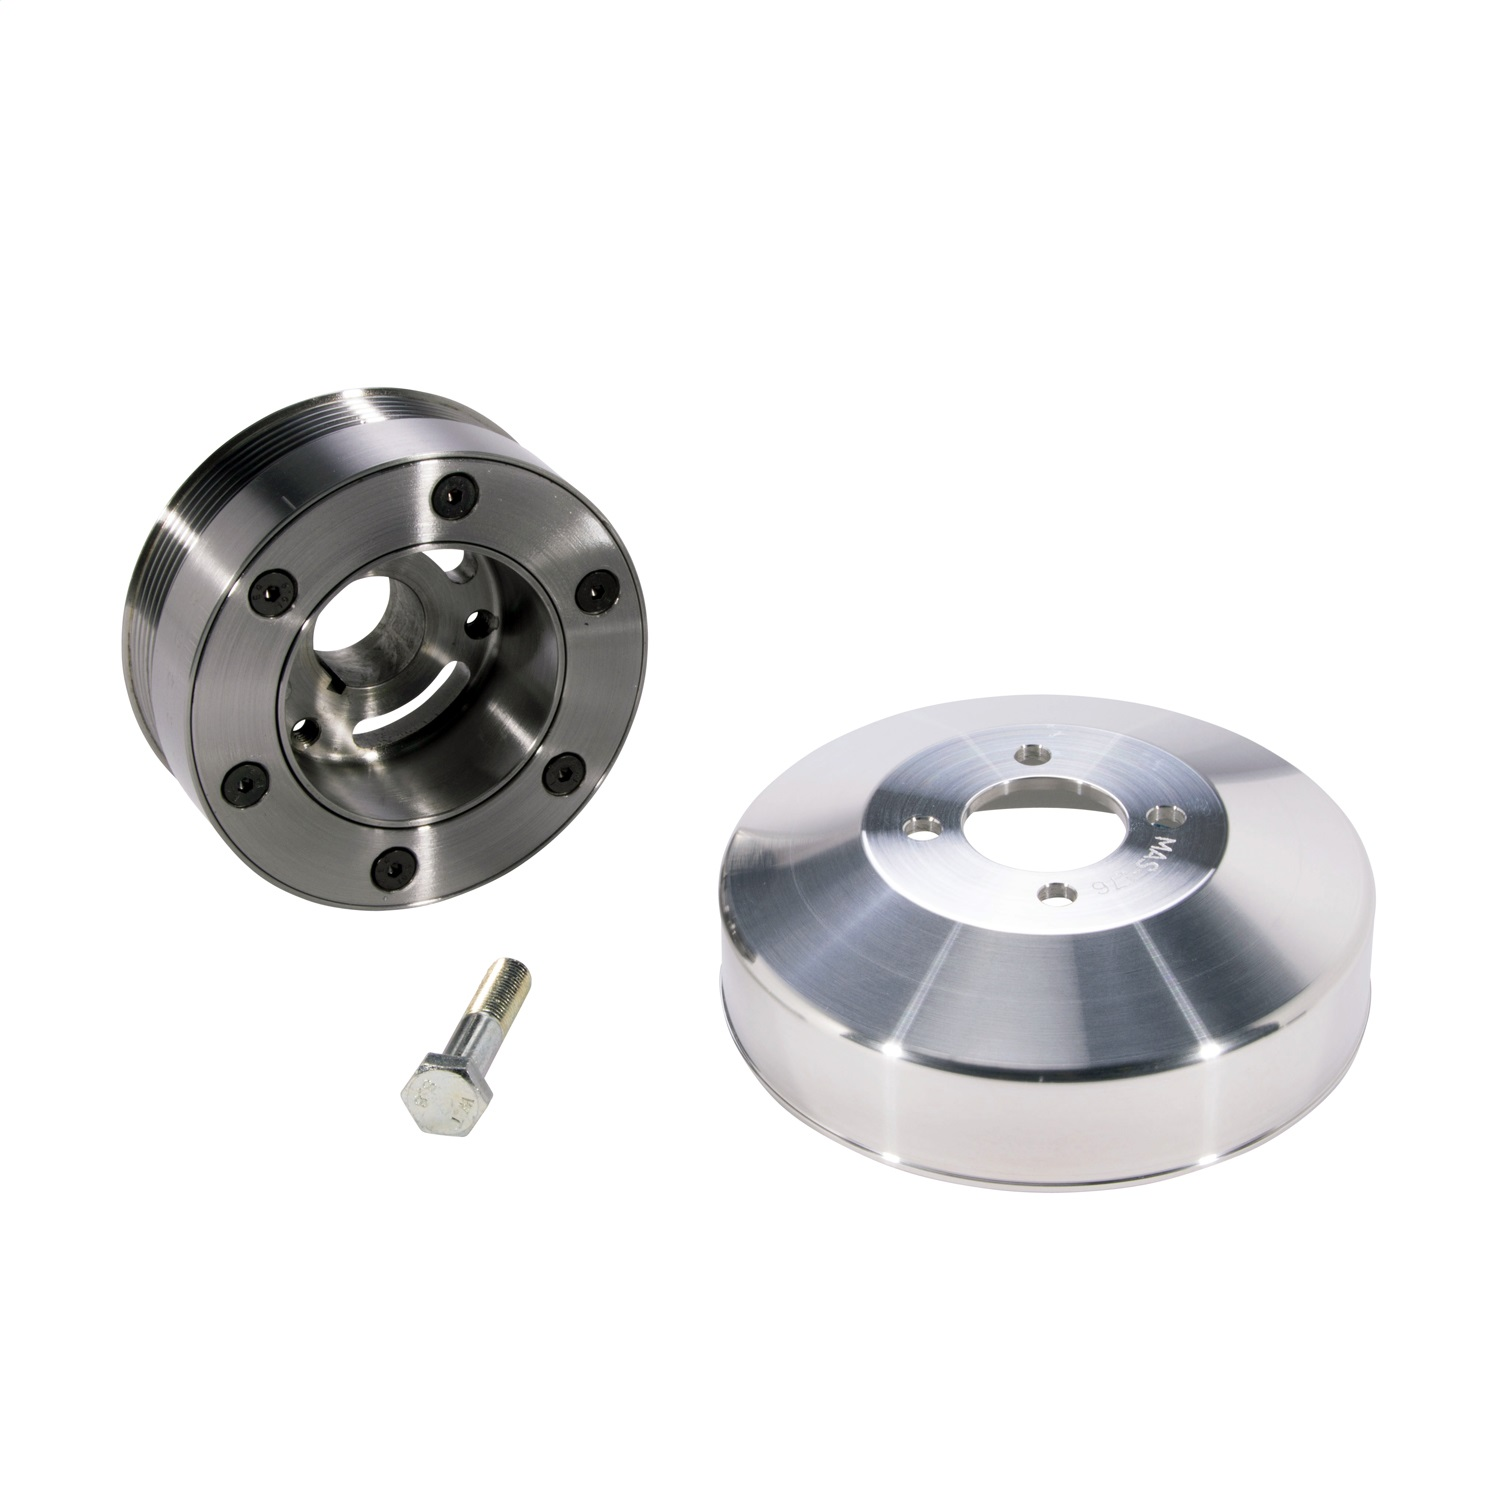 BBK Performance Parts 1653 Power-Plus Series Underdrive Pulley System